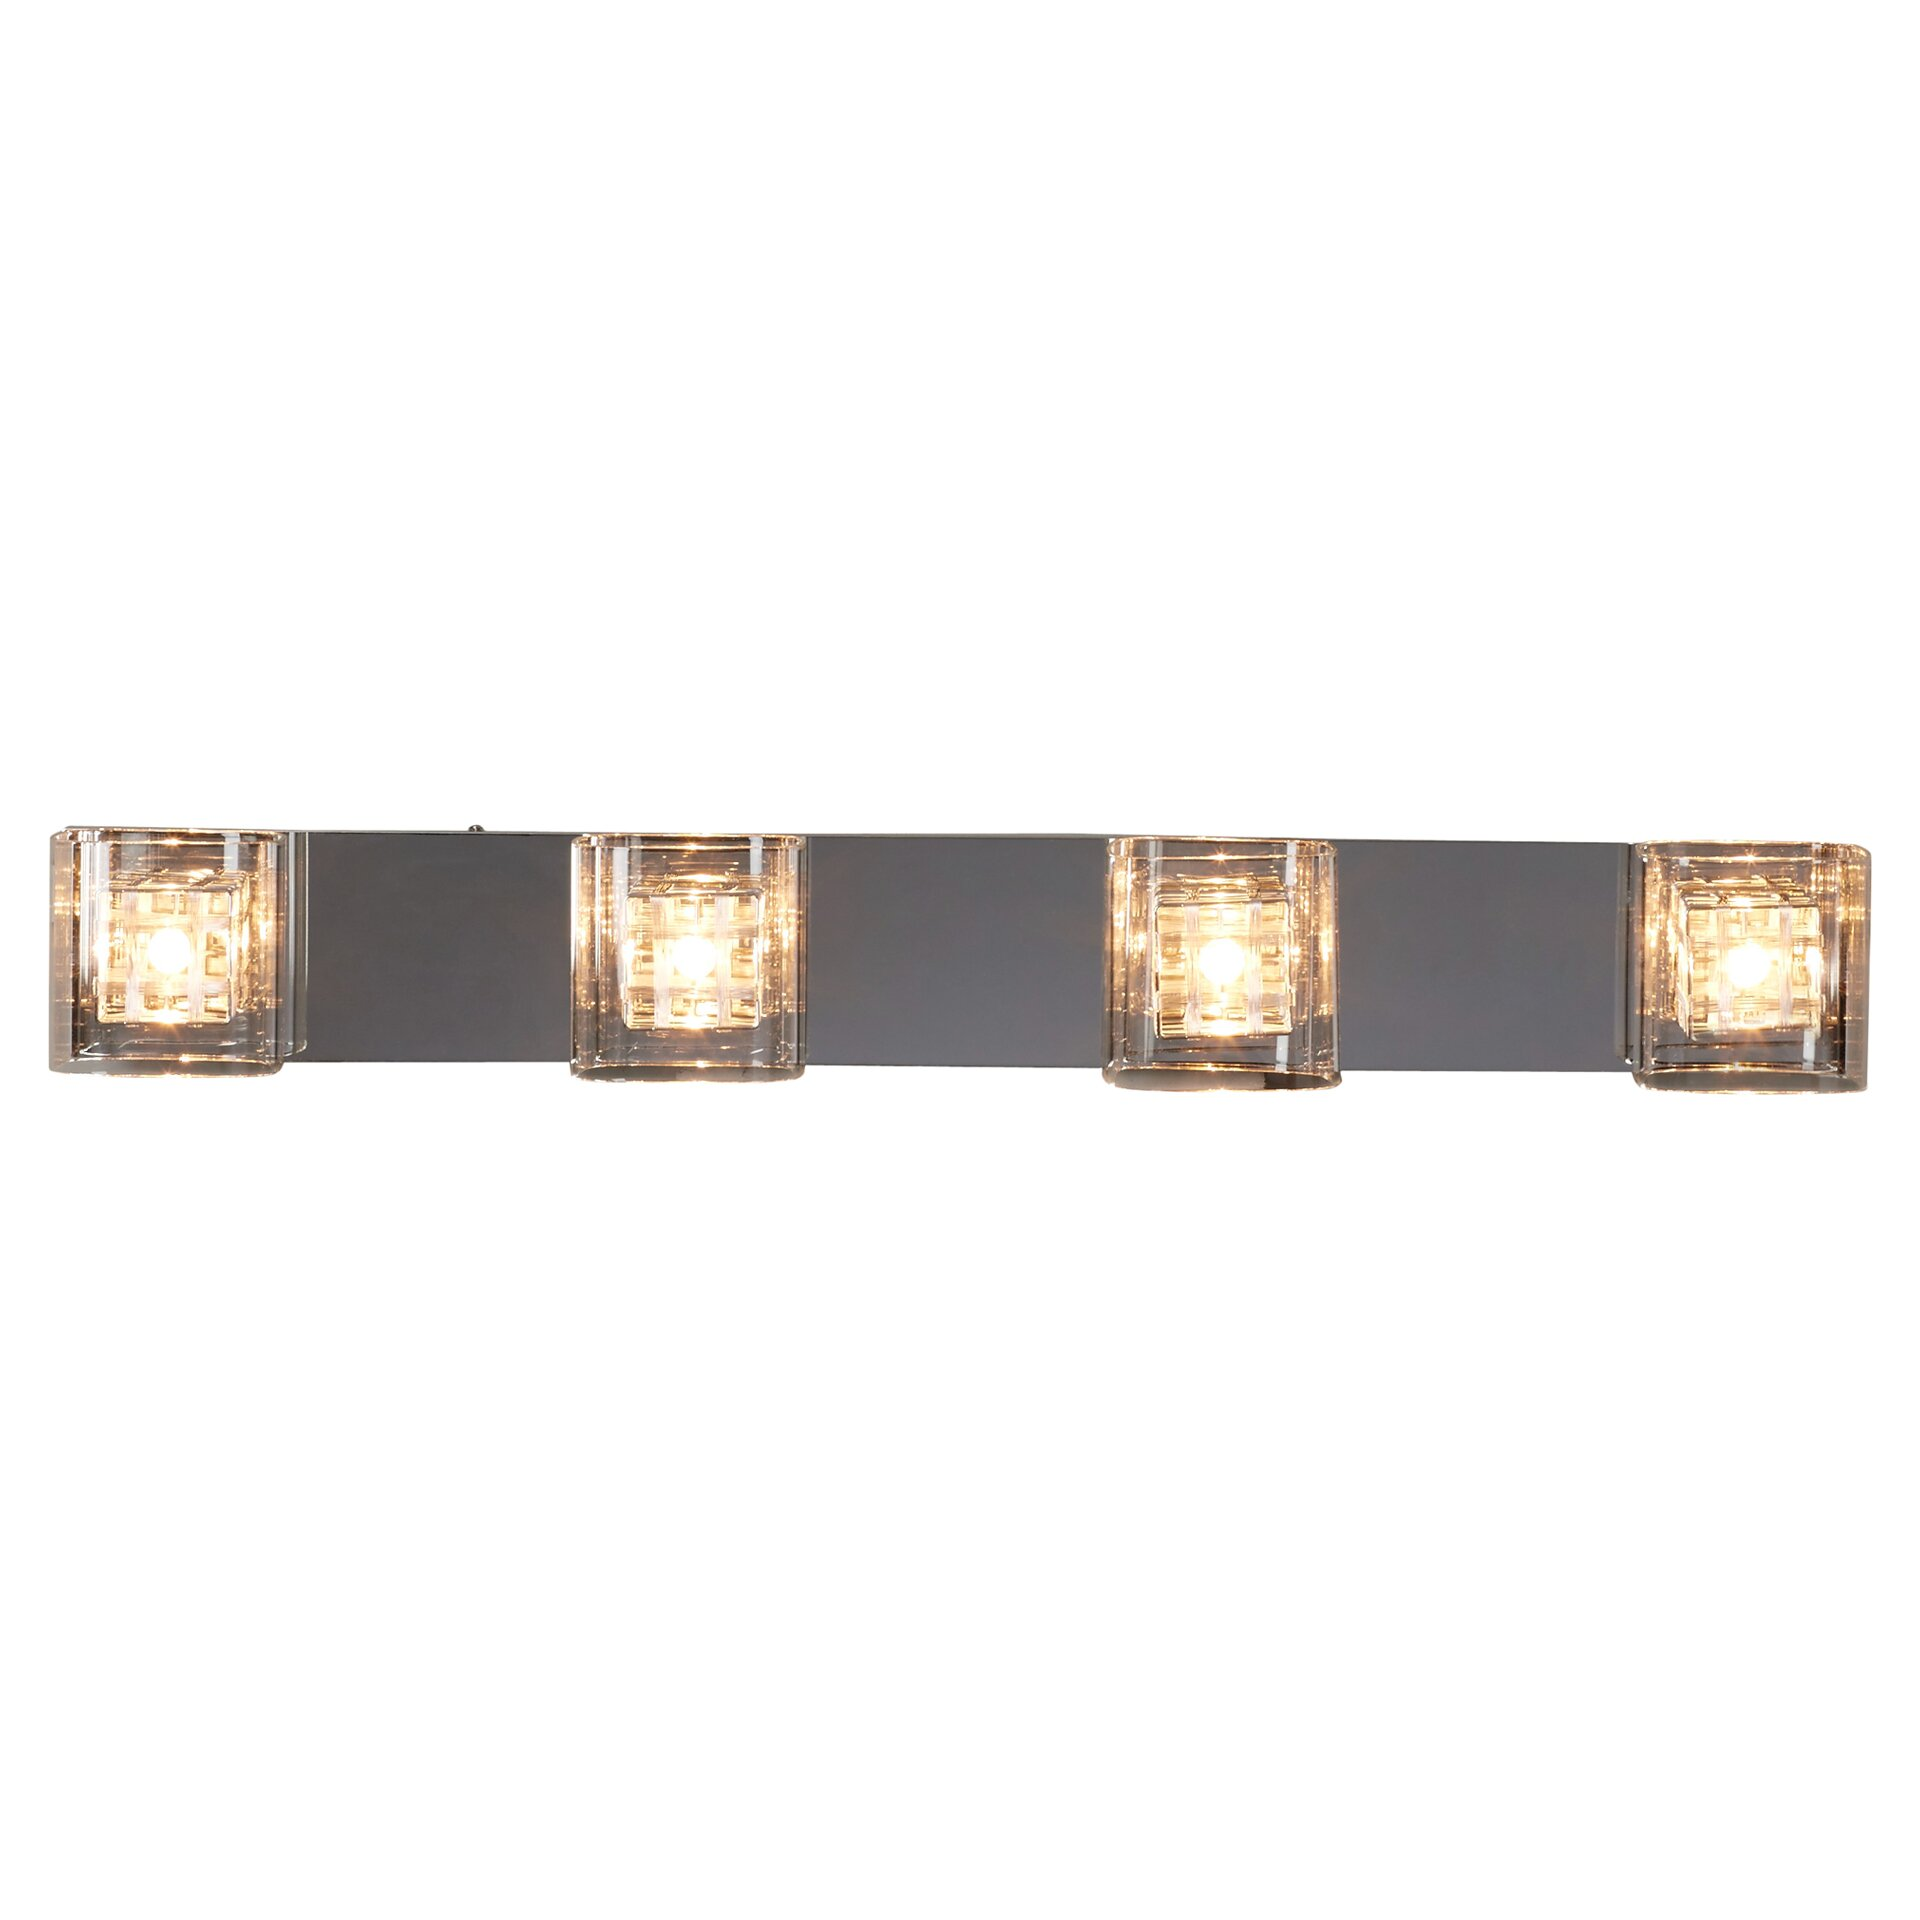 House Of Hampton Flynn Light Bath Bar  Reviews Wayfair -  fort lauderdale bathroom mirror light